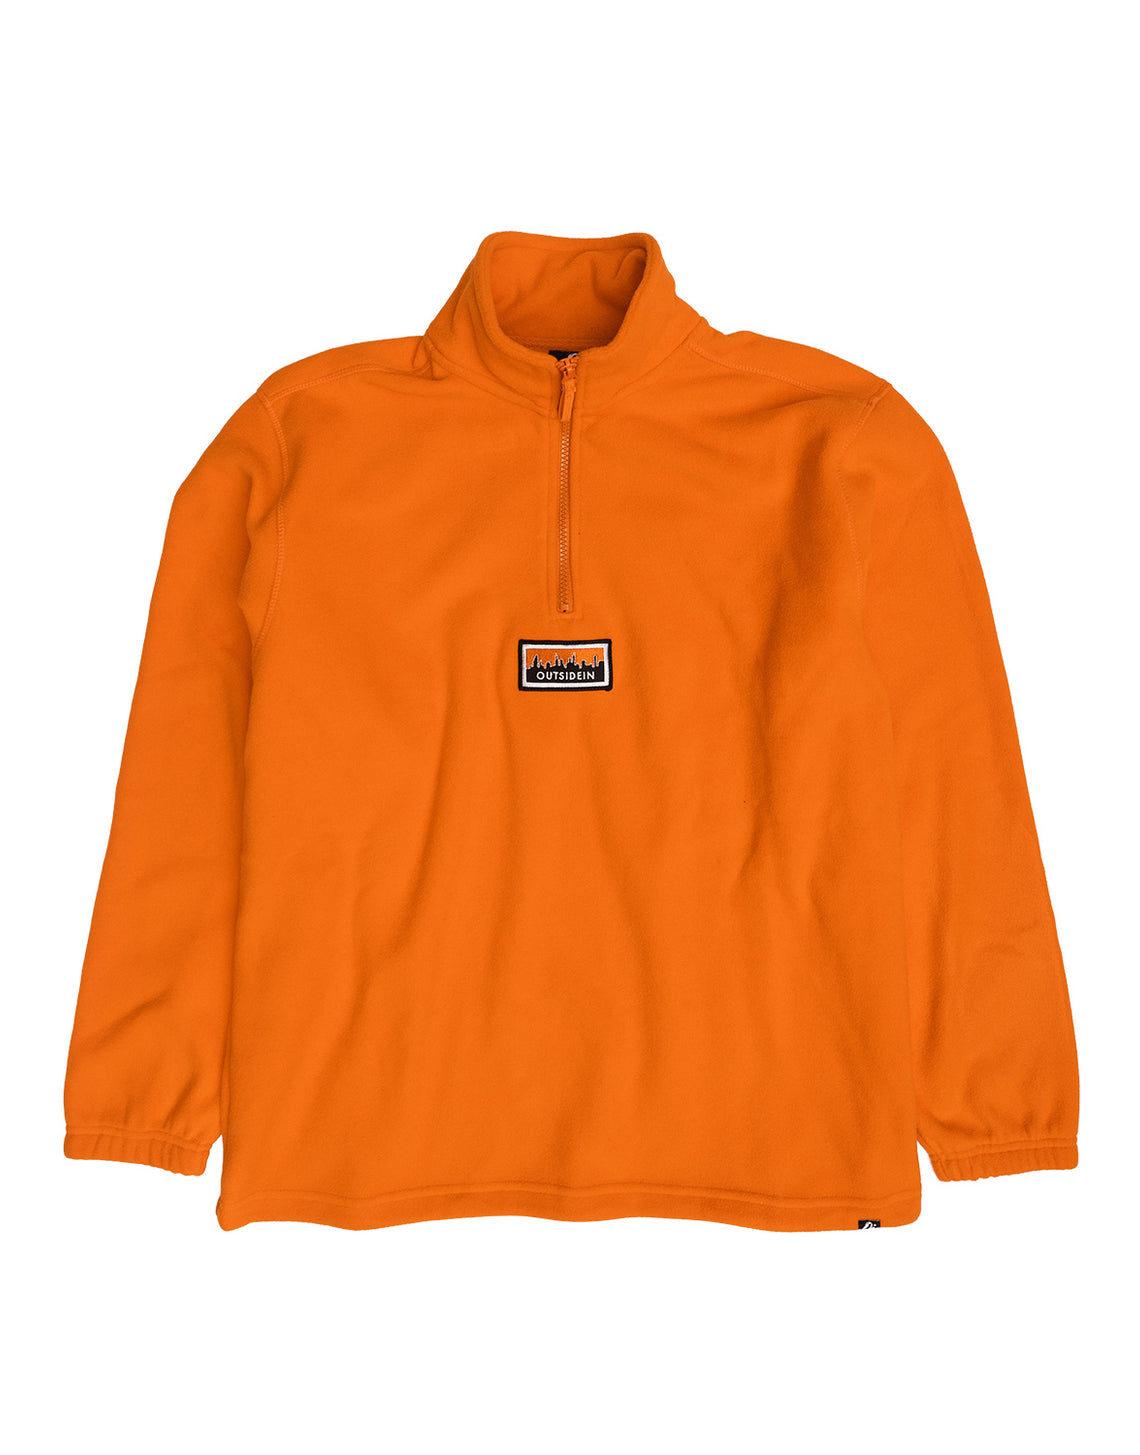 Cityscape Fleece Orange - OutsideIn